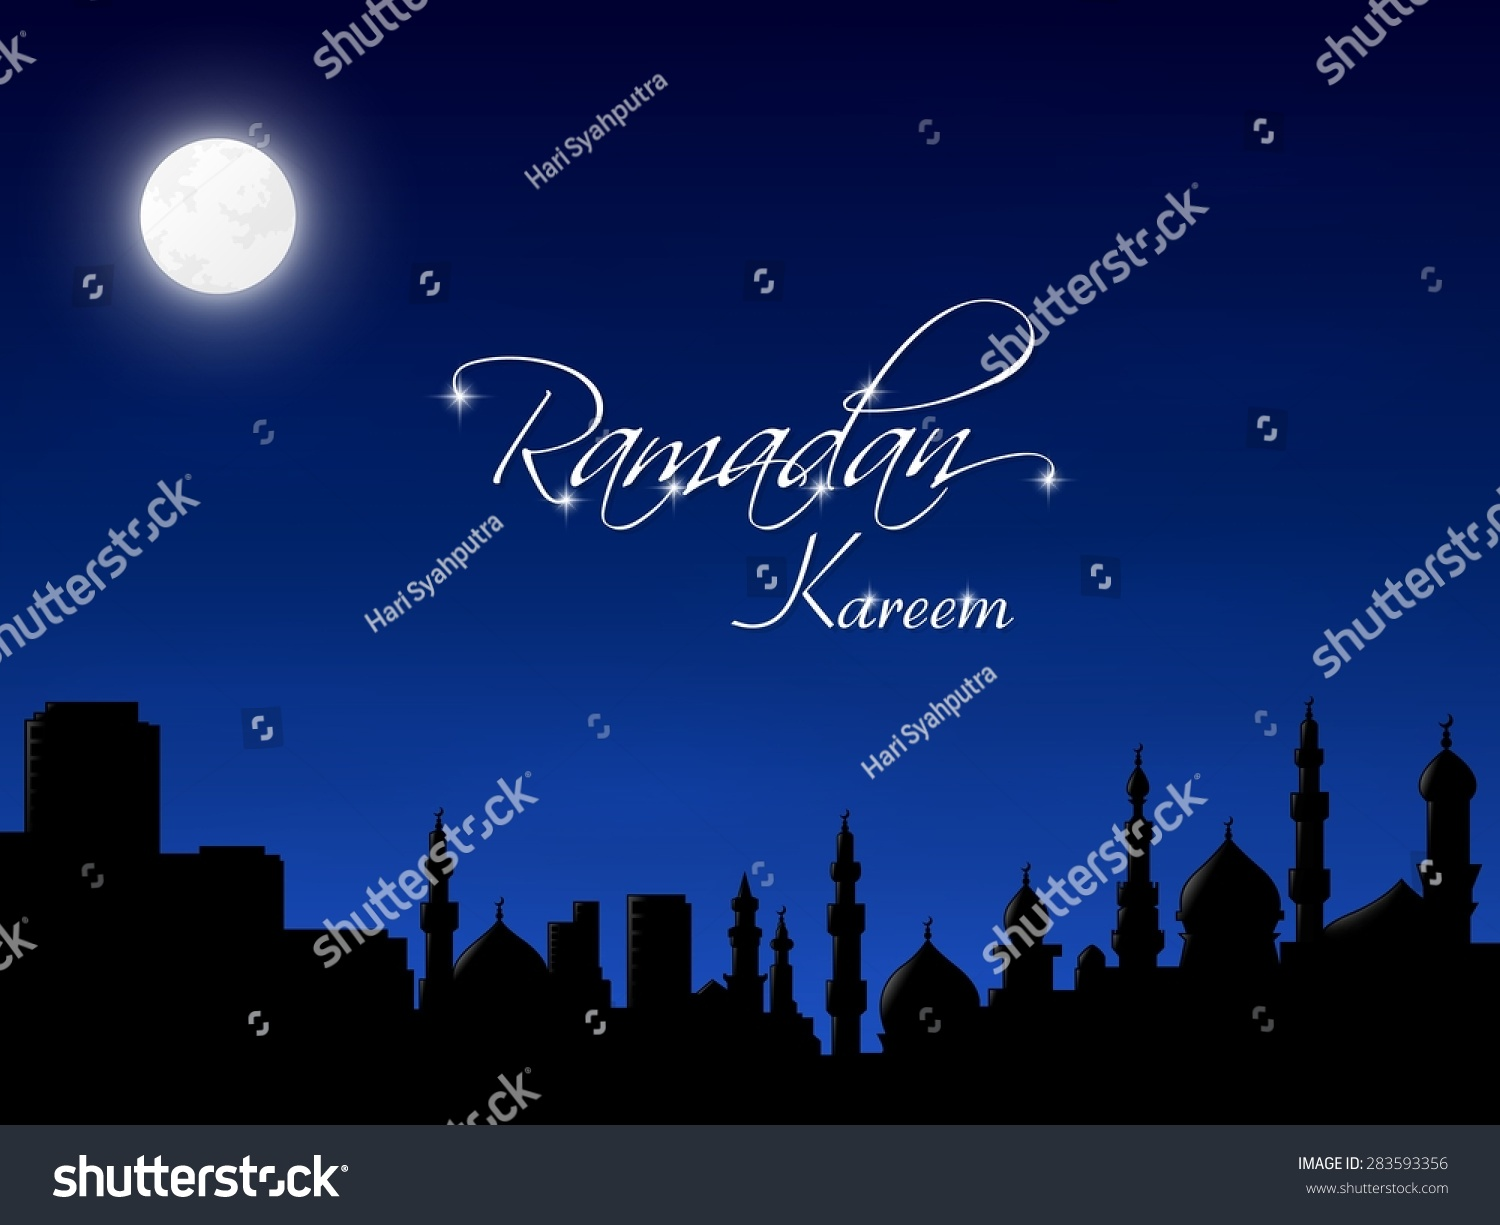 Top Wallpaper Night Abstract - stock-vector-islamic-wallpaper-abstract-background-template-theme-night-blue-god-mosque-residence-283593356  Snapshot.jpg